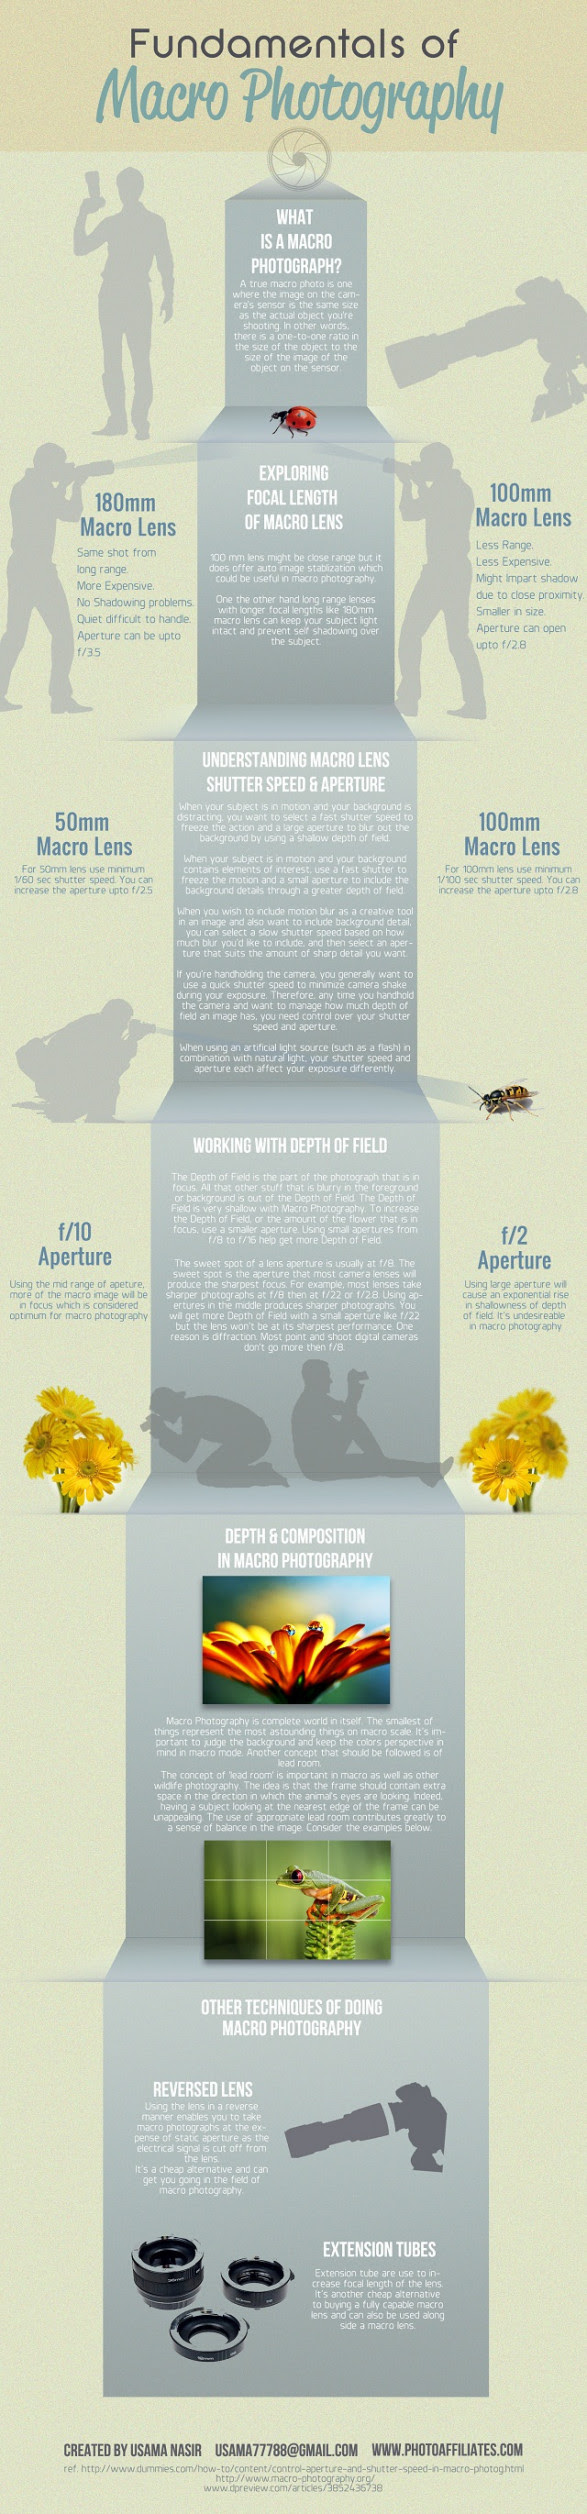 Fundamentals of Macro Photography [infographic]